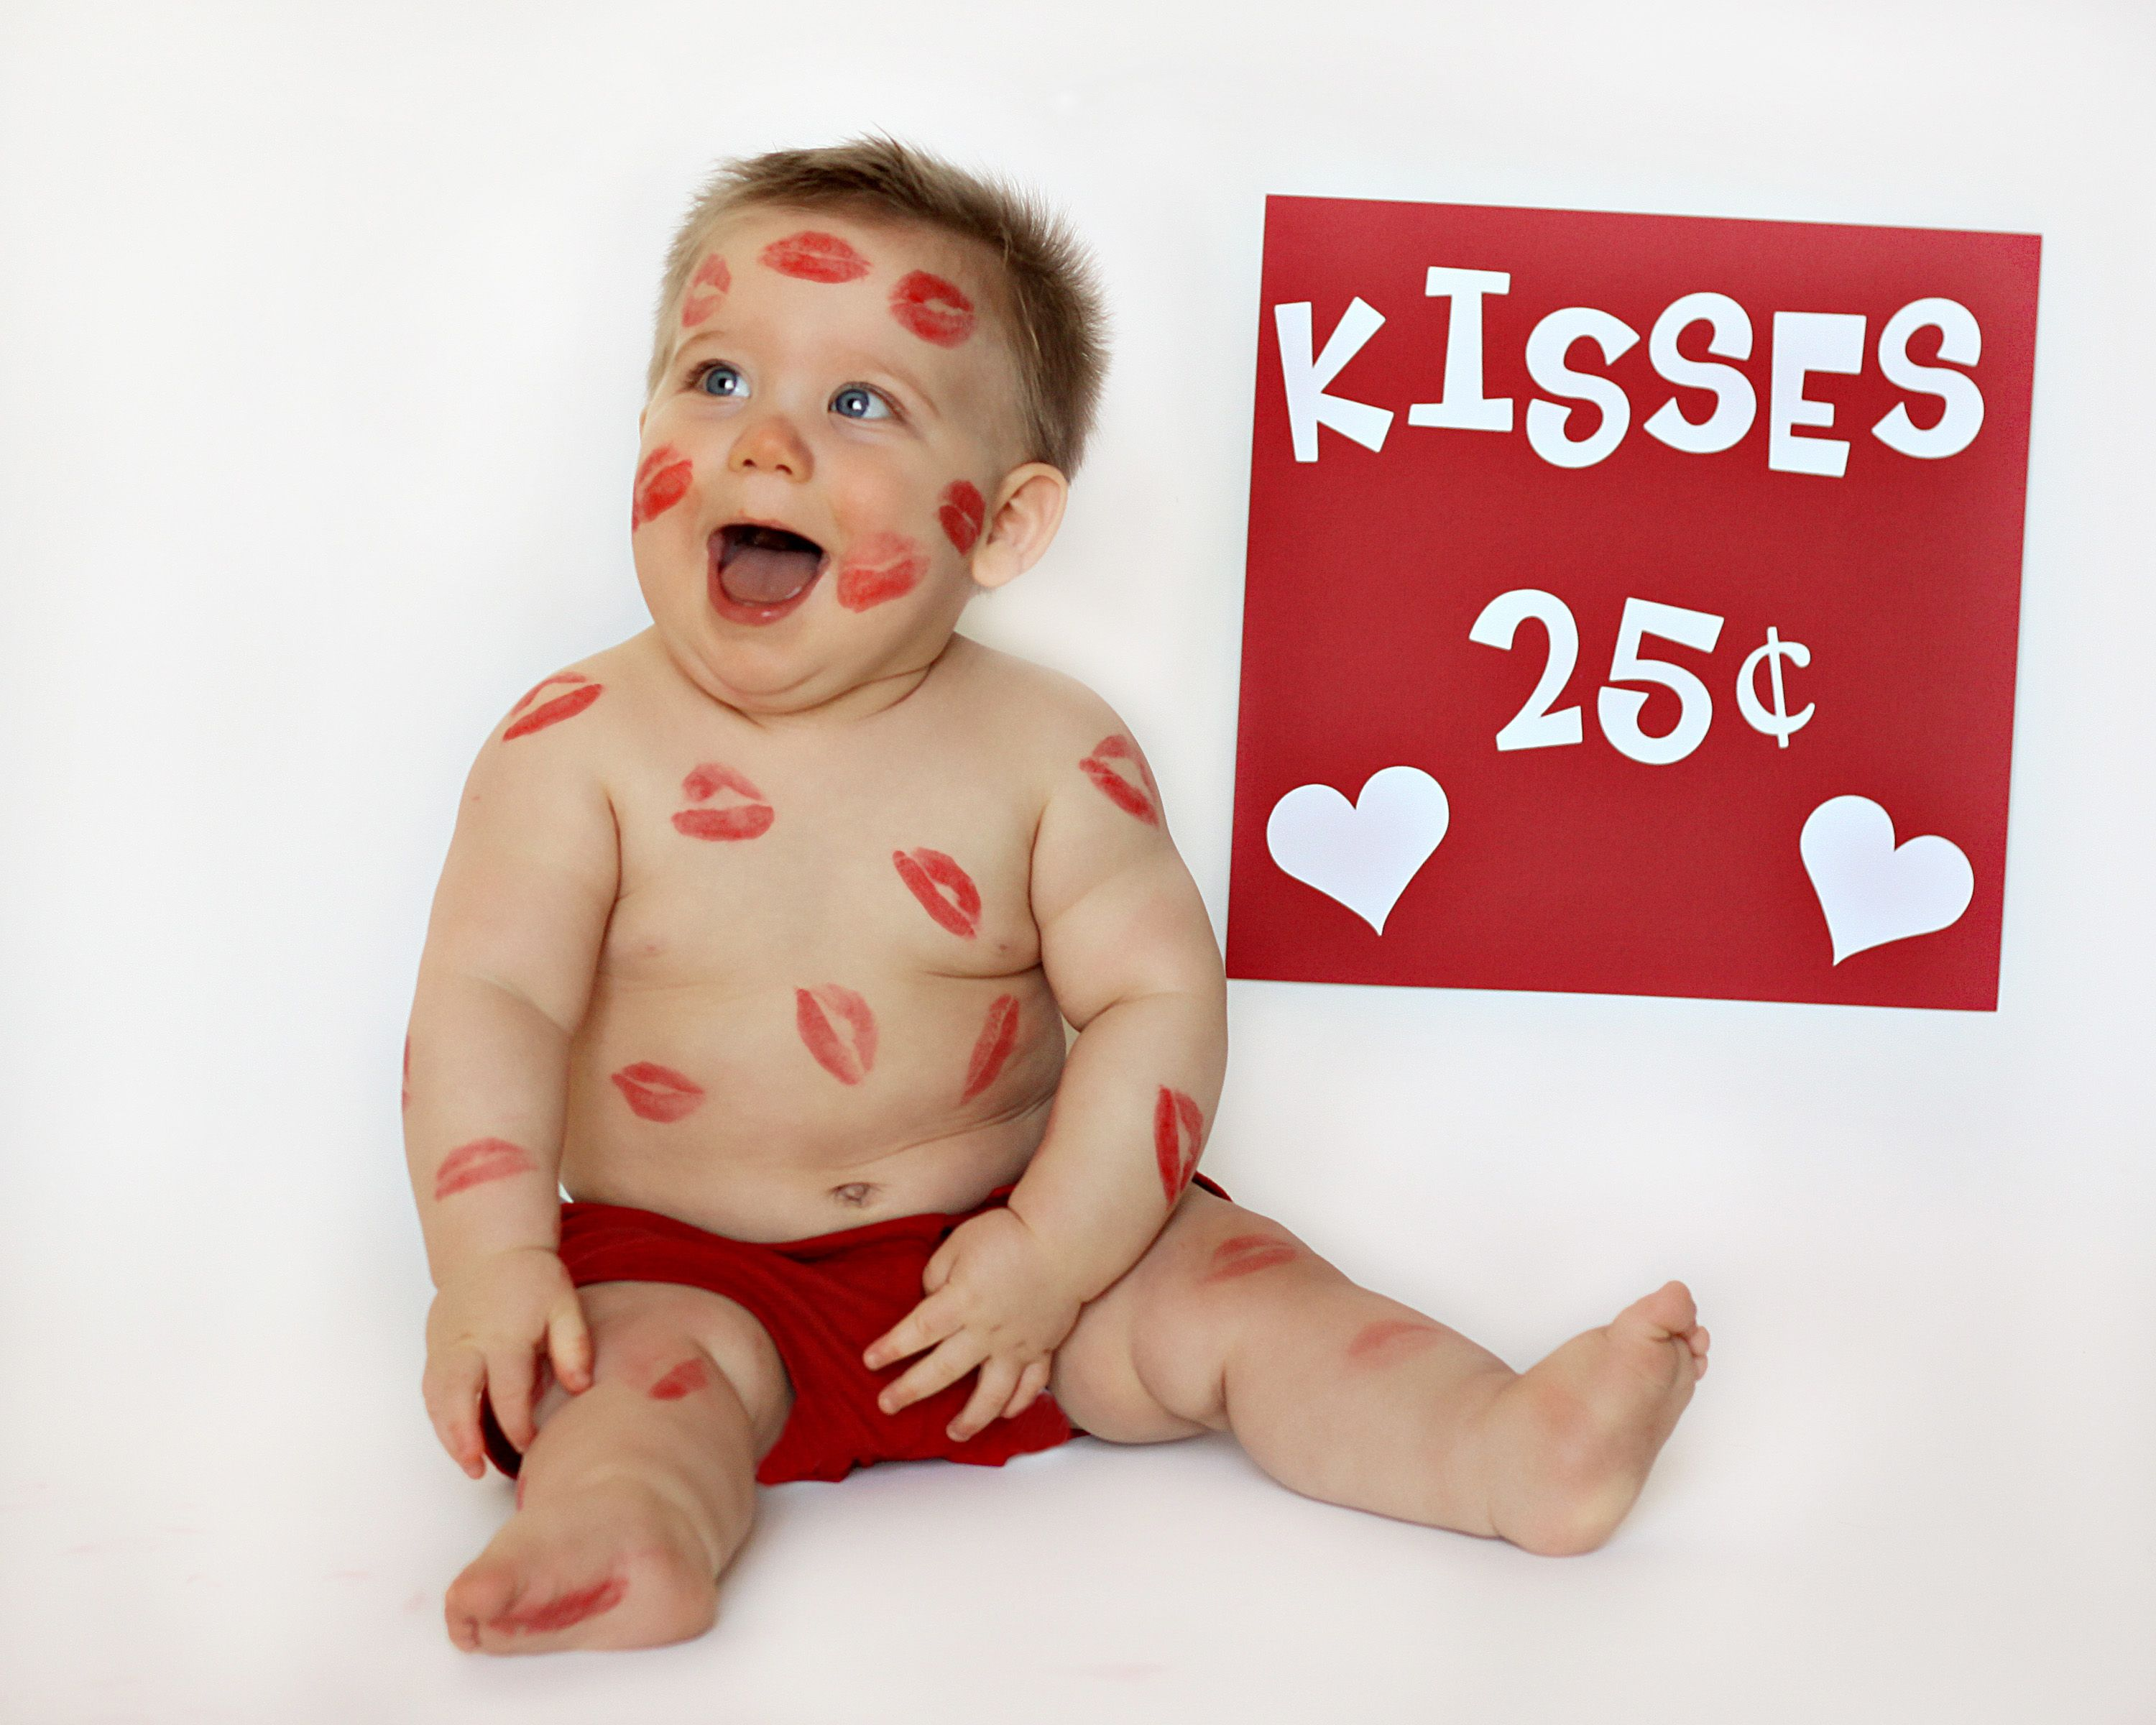 valentine's day baby names | photography, babies and kiss, Ideas